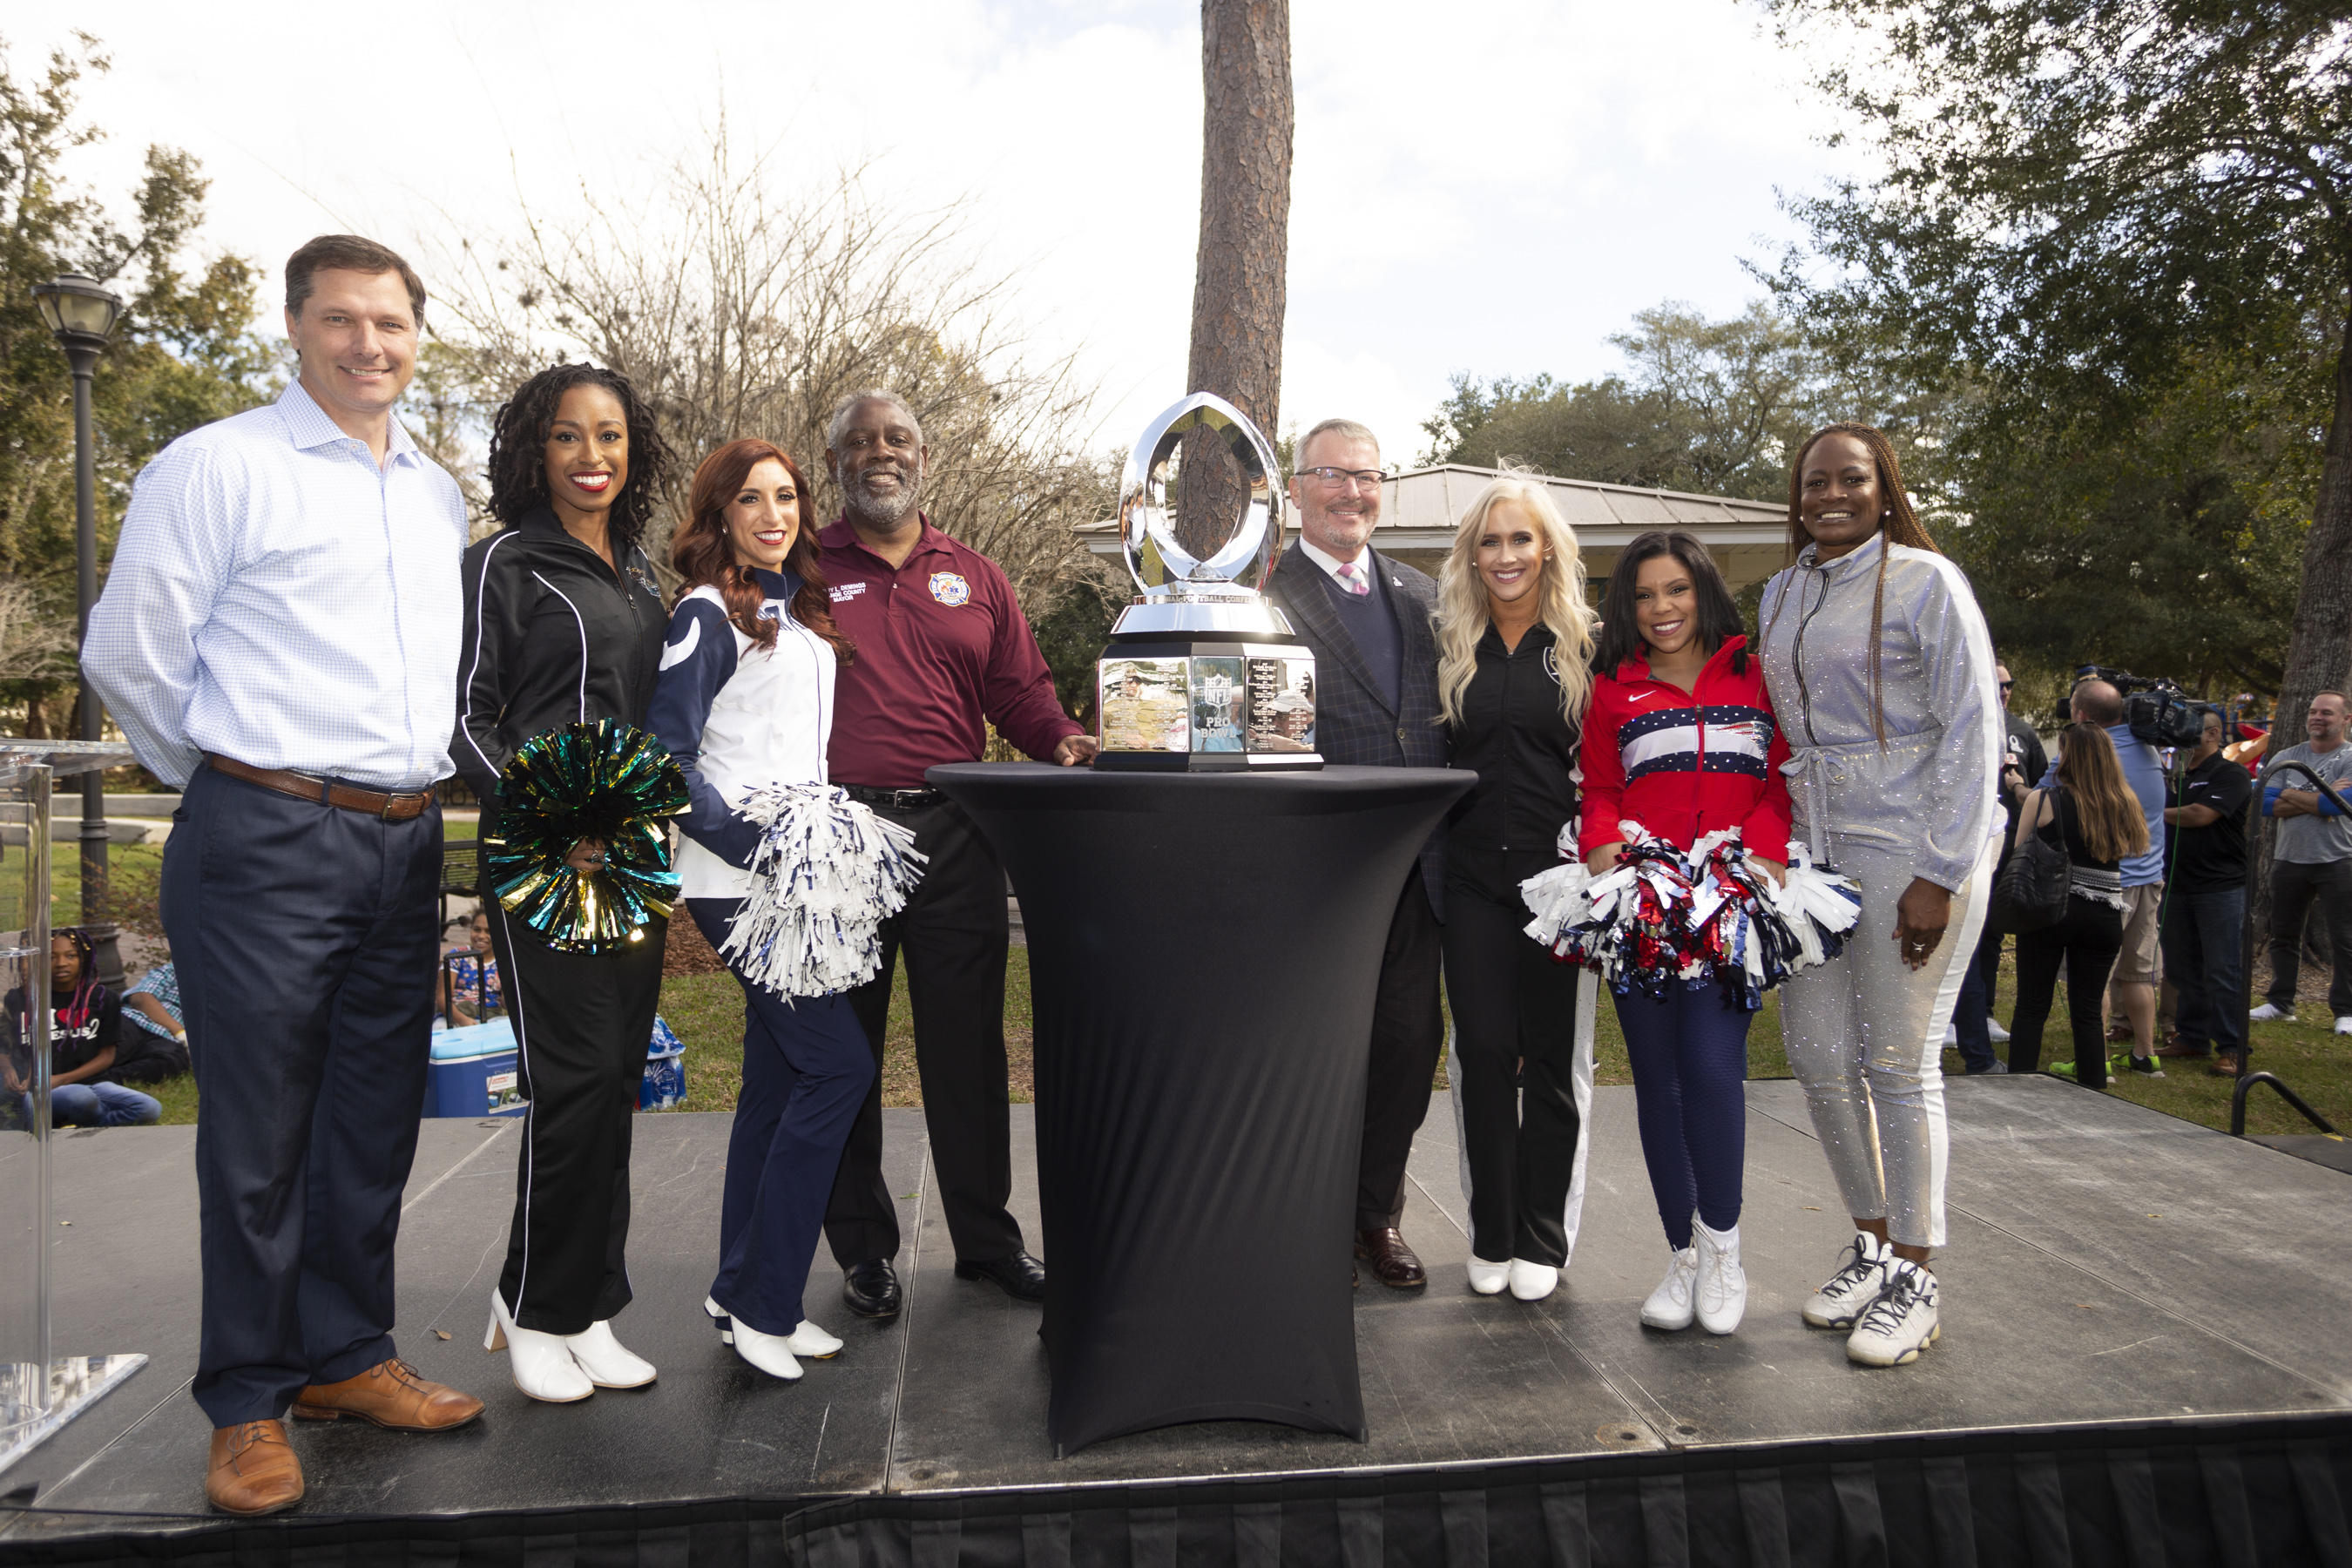 Mayor Demings, community leaders, and representatives from the NFL stand on a platform alongside the trophy for the 2019 NFL Pro Bowl game.